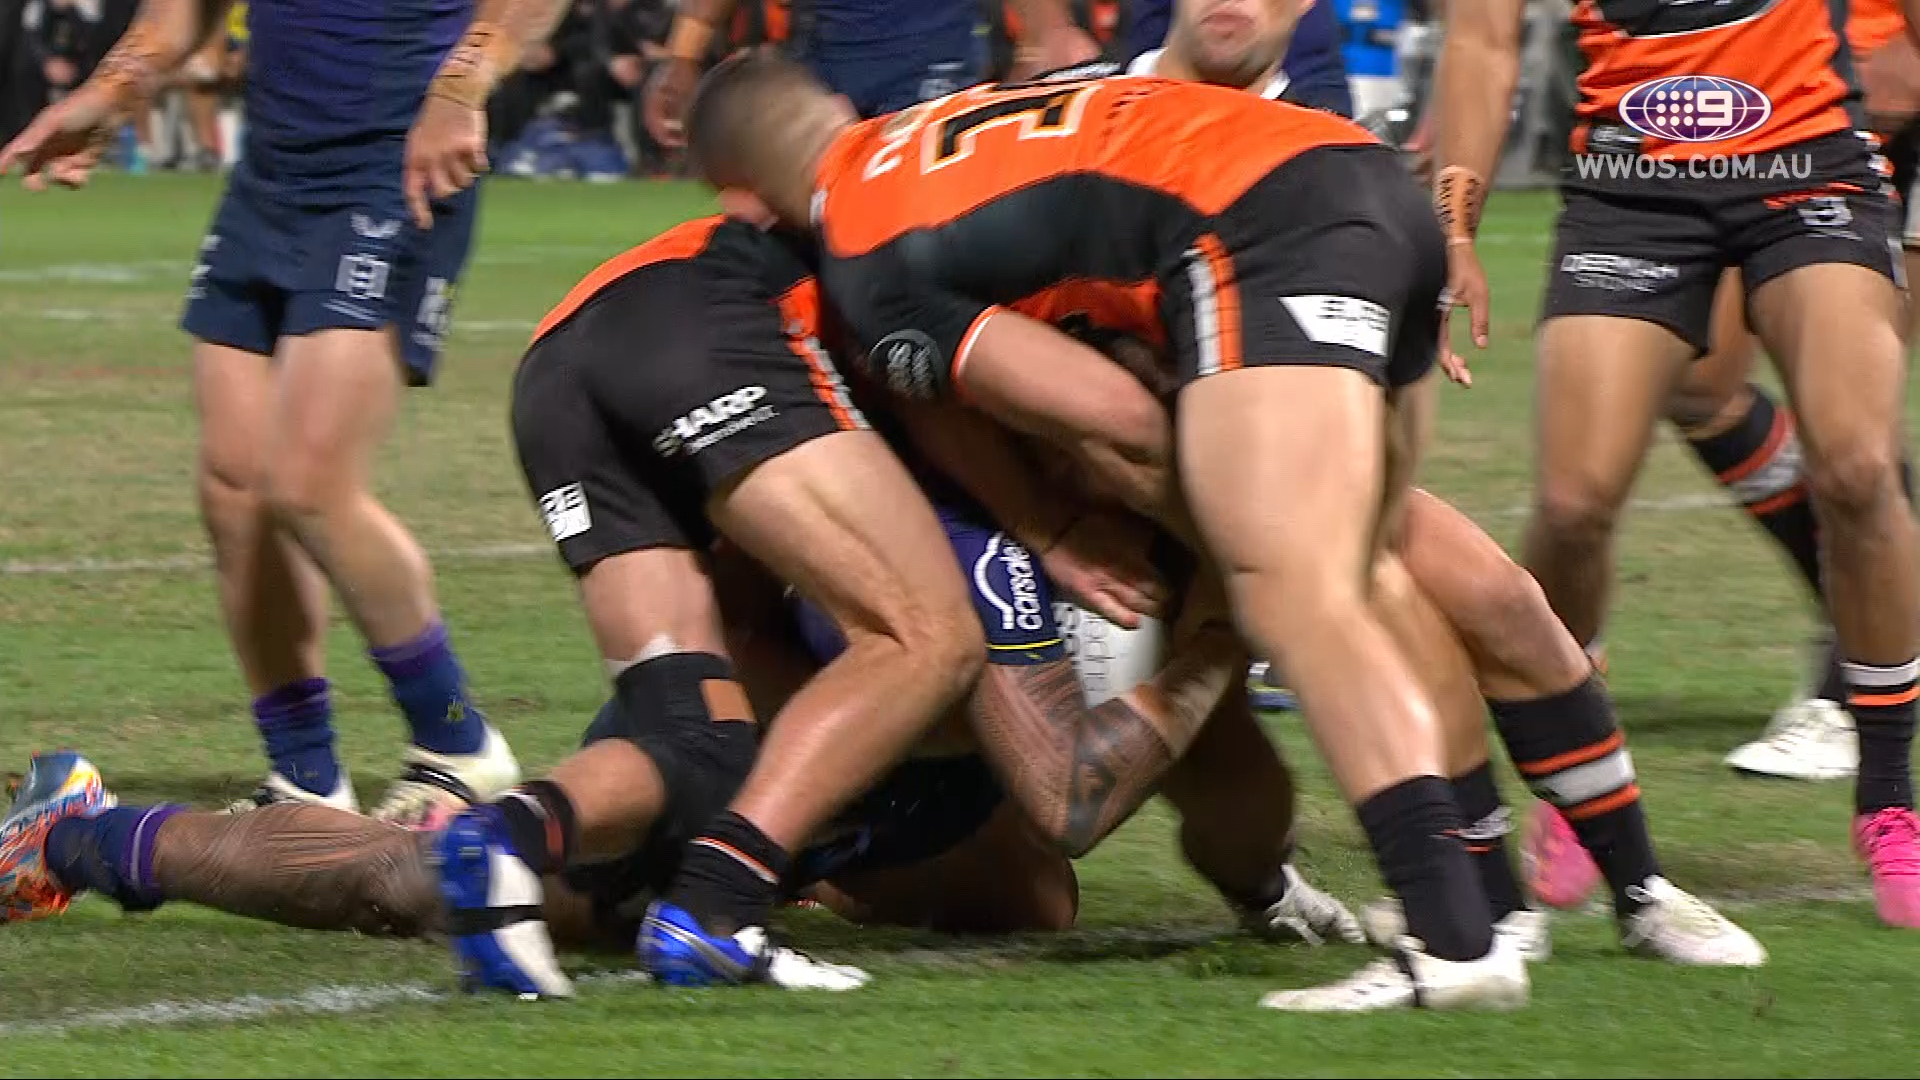 NRL Highlights: The Storm blowout the Tigers in historic fashion - Round 15